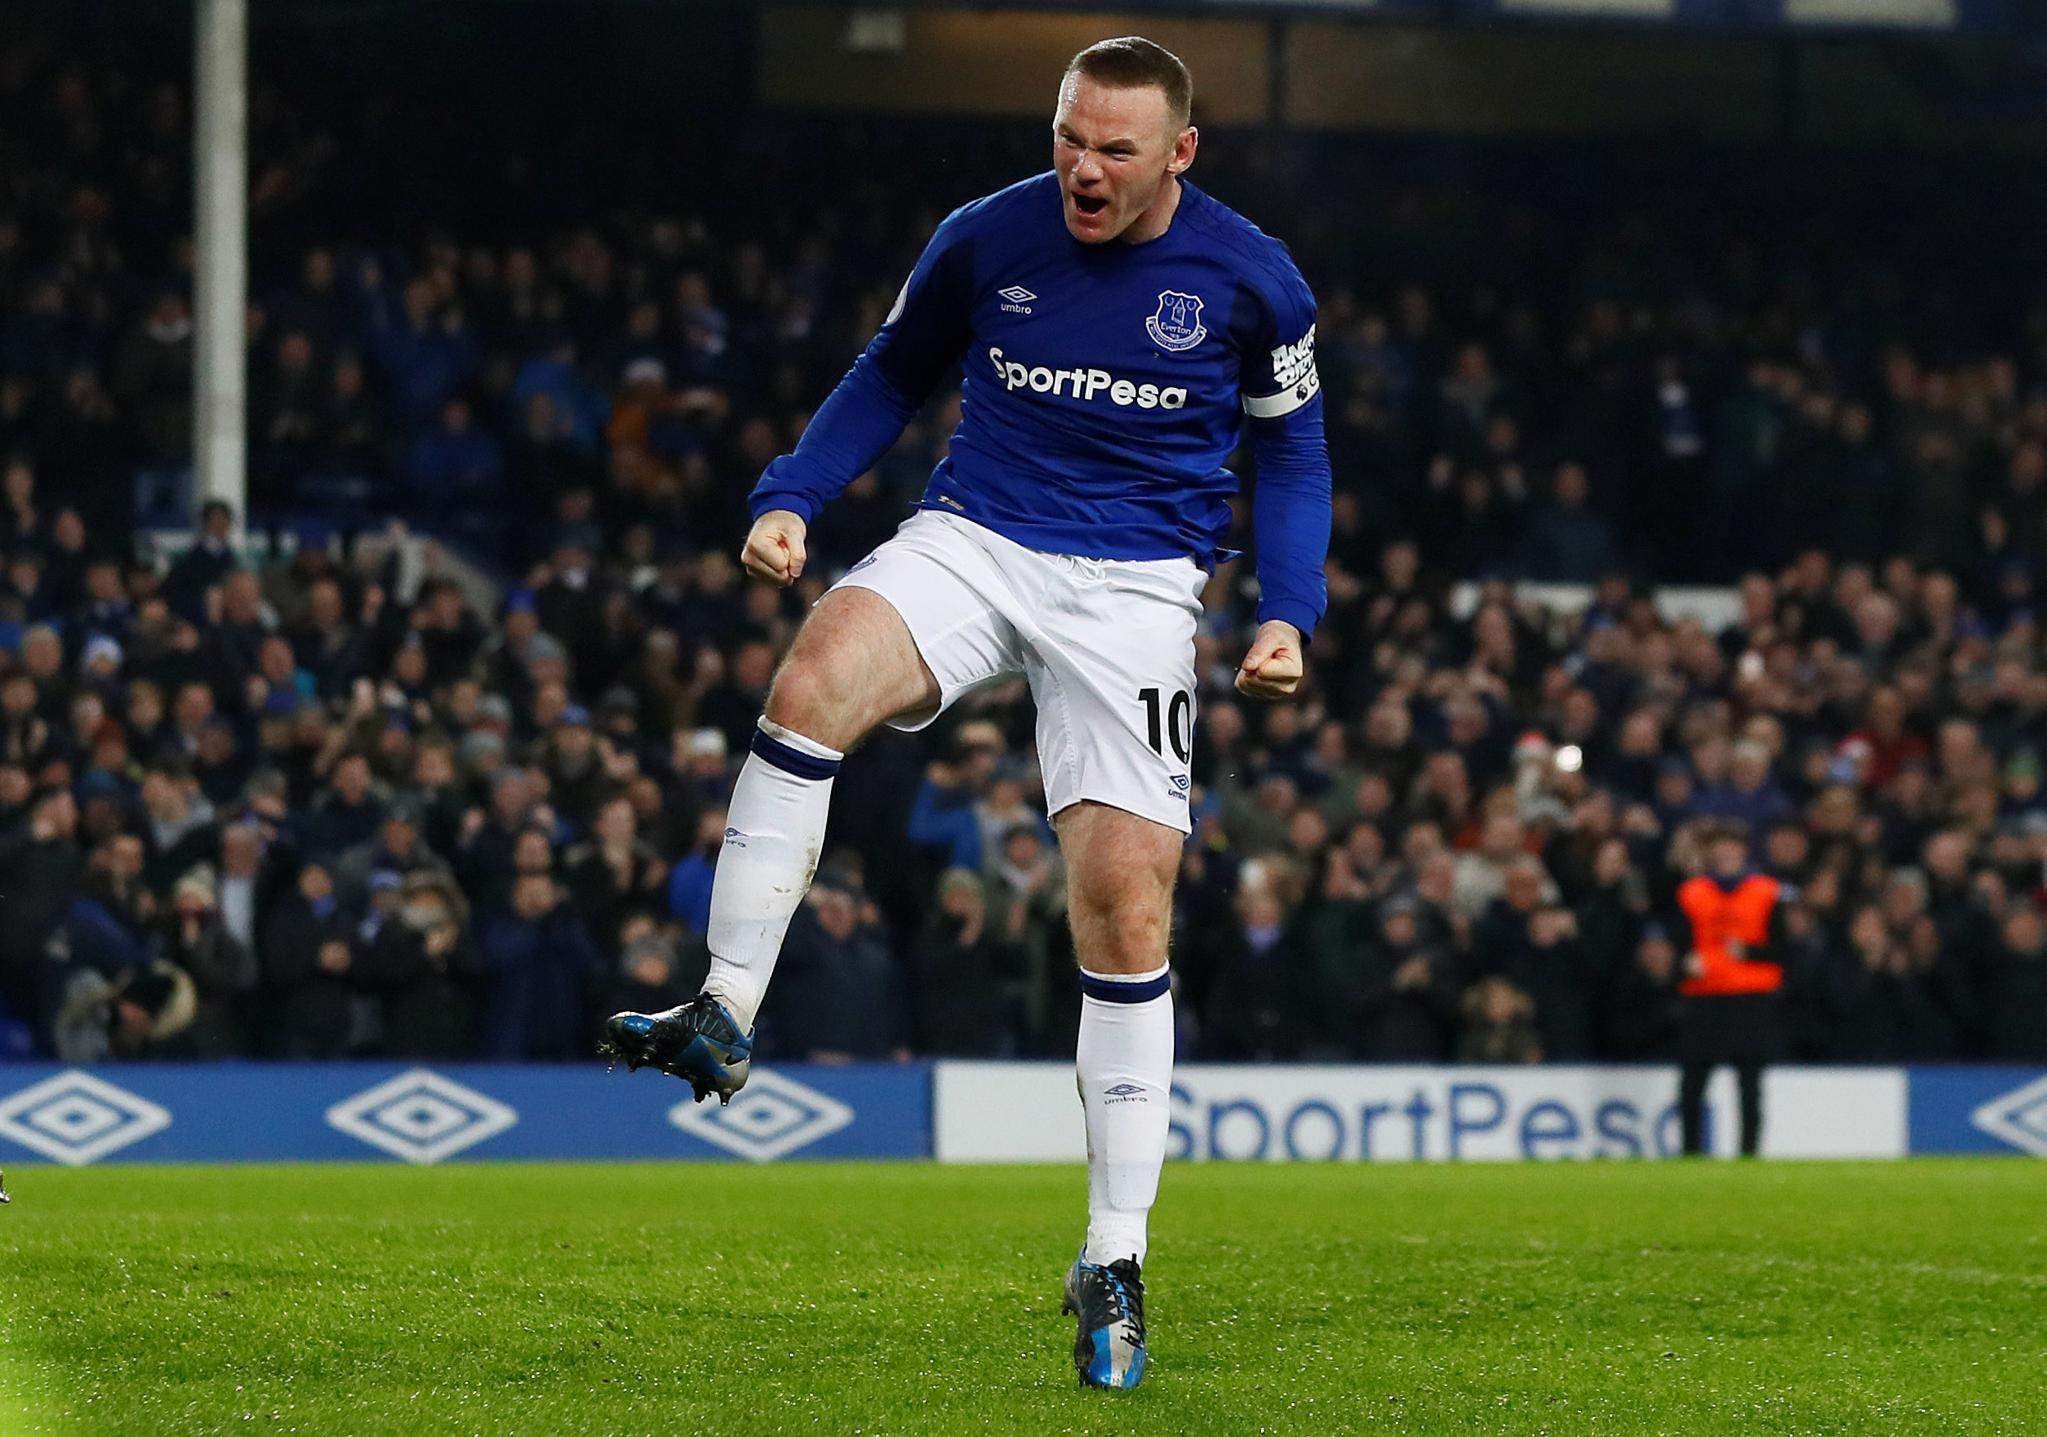 Wayne Rooney has had a hand in 14 goals in 13 #PL starts against West Brom - 7 goals & 7 assists  #EVEWBA https://t.co/SKGCM8rK49